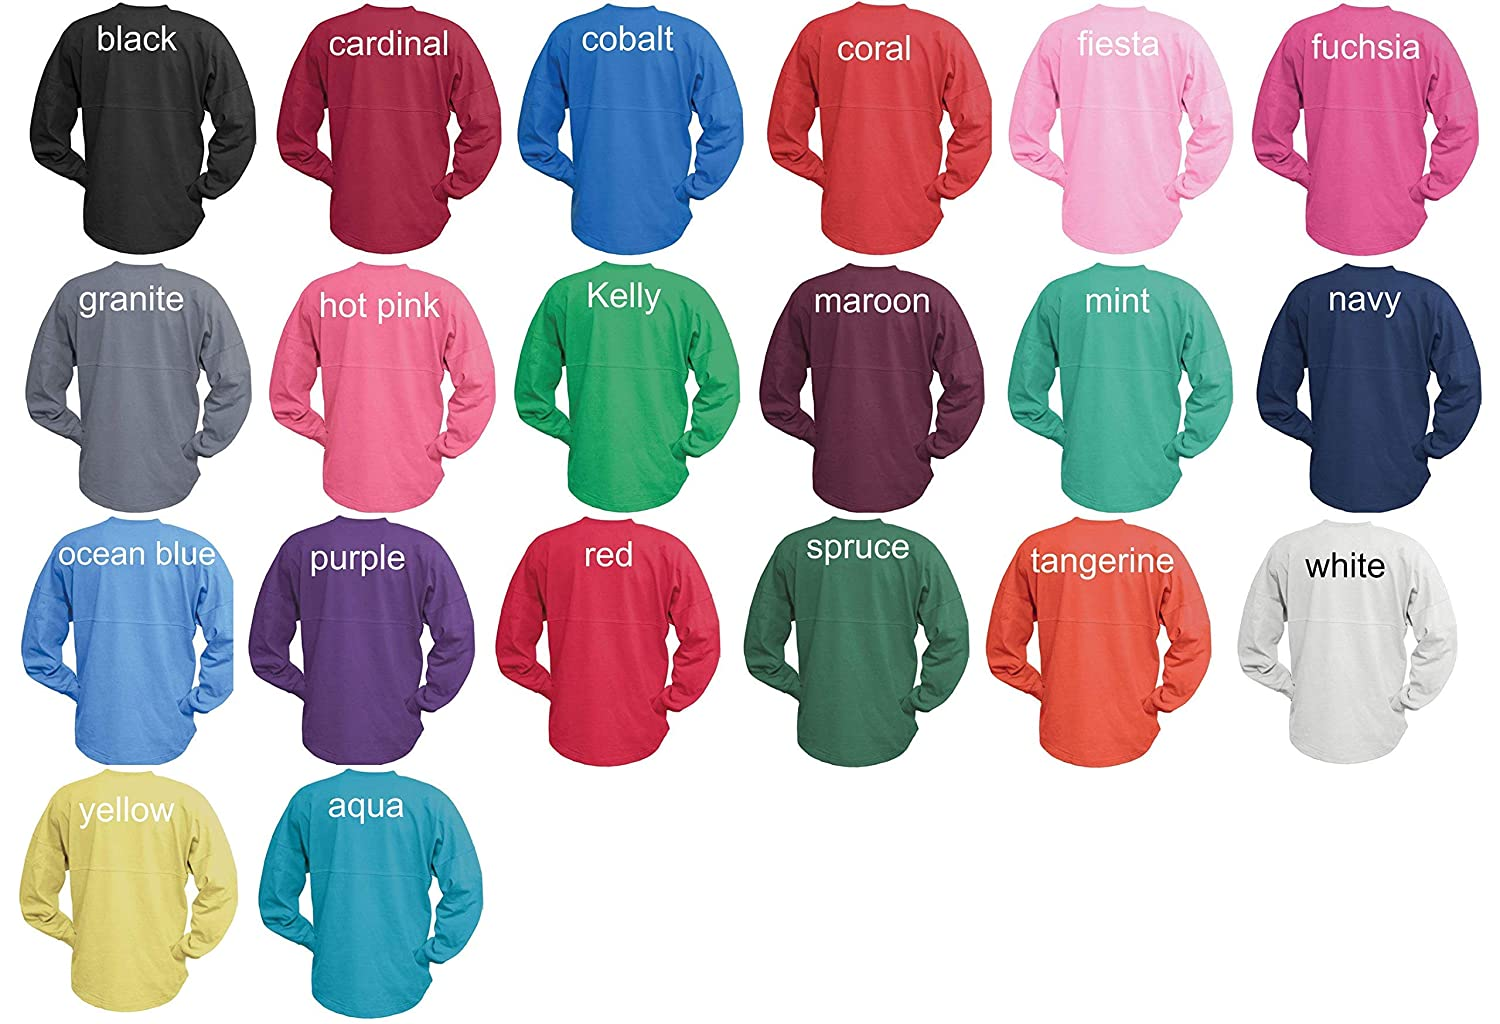 b886b940e Amazon.com: Personalized Long Sleeve Oversized Breast Cancer Survivor  Awareness Billboard Spirit Wear T-Shirt Jersey - Walks, Event: Handmade